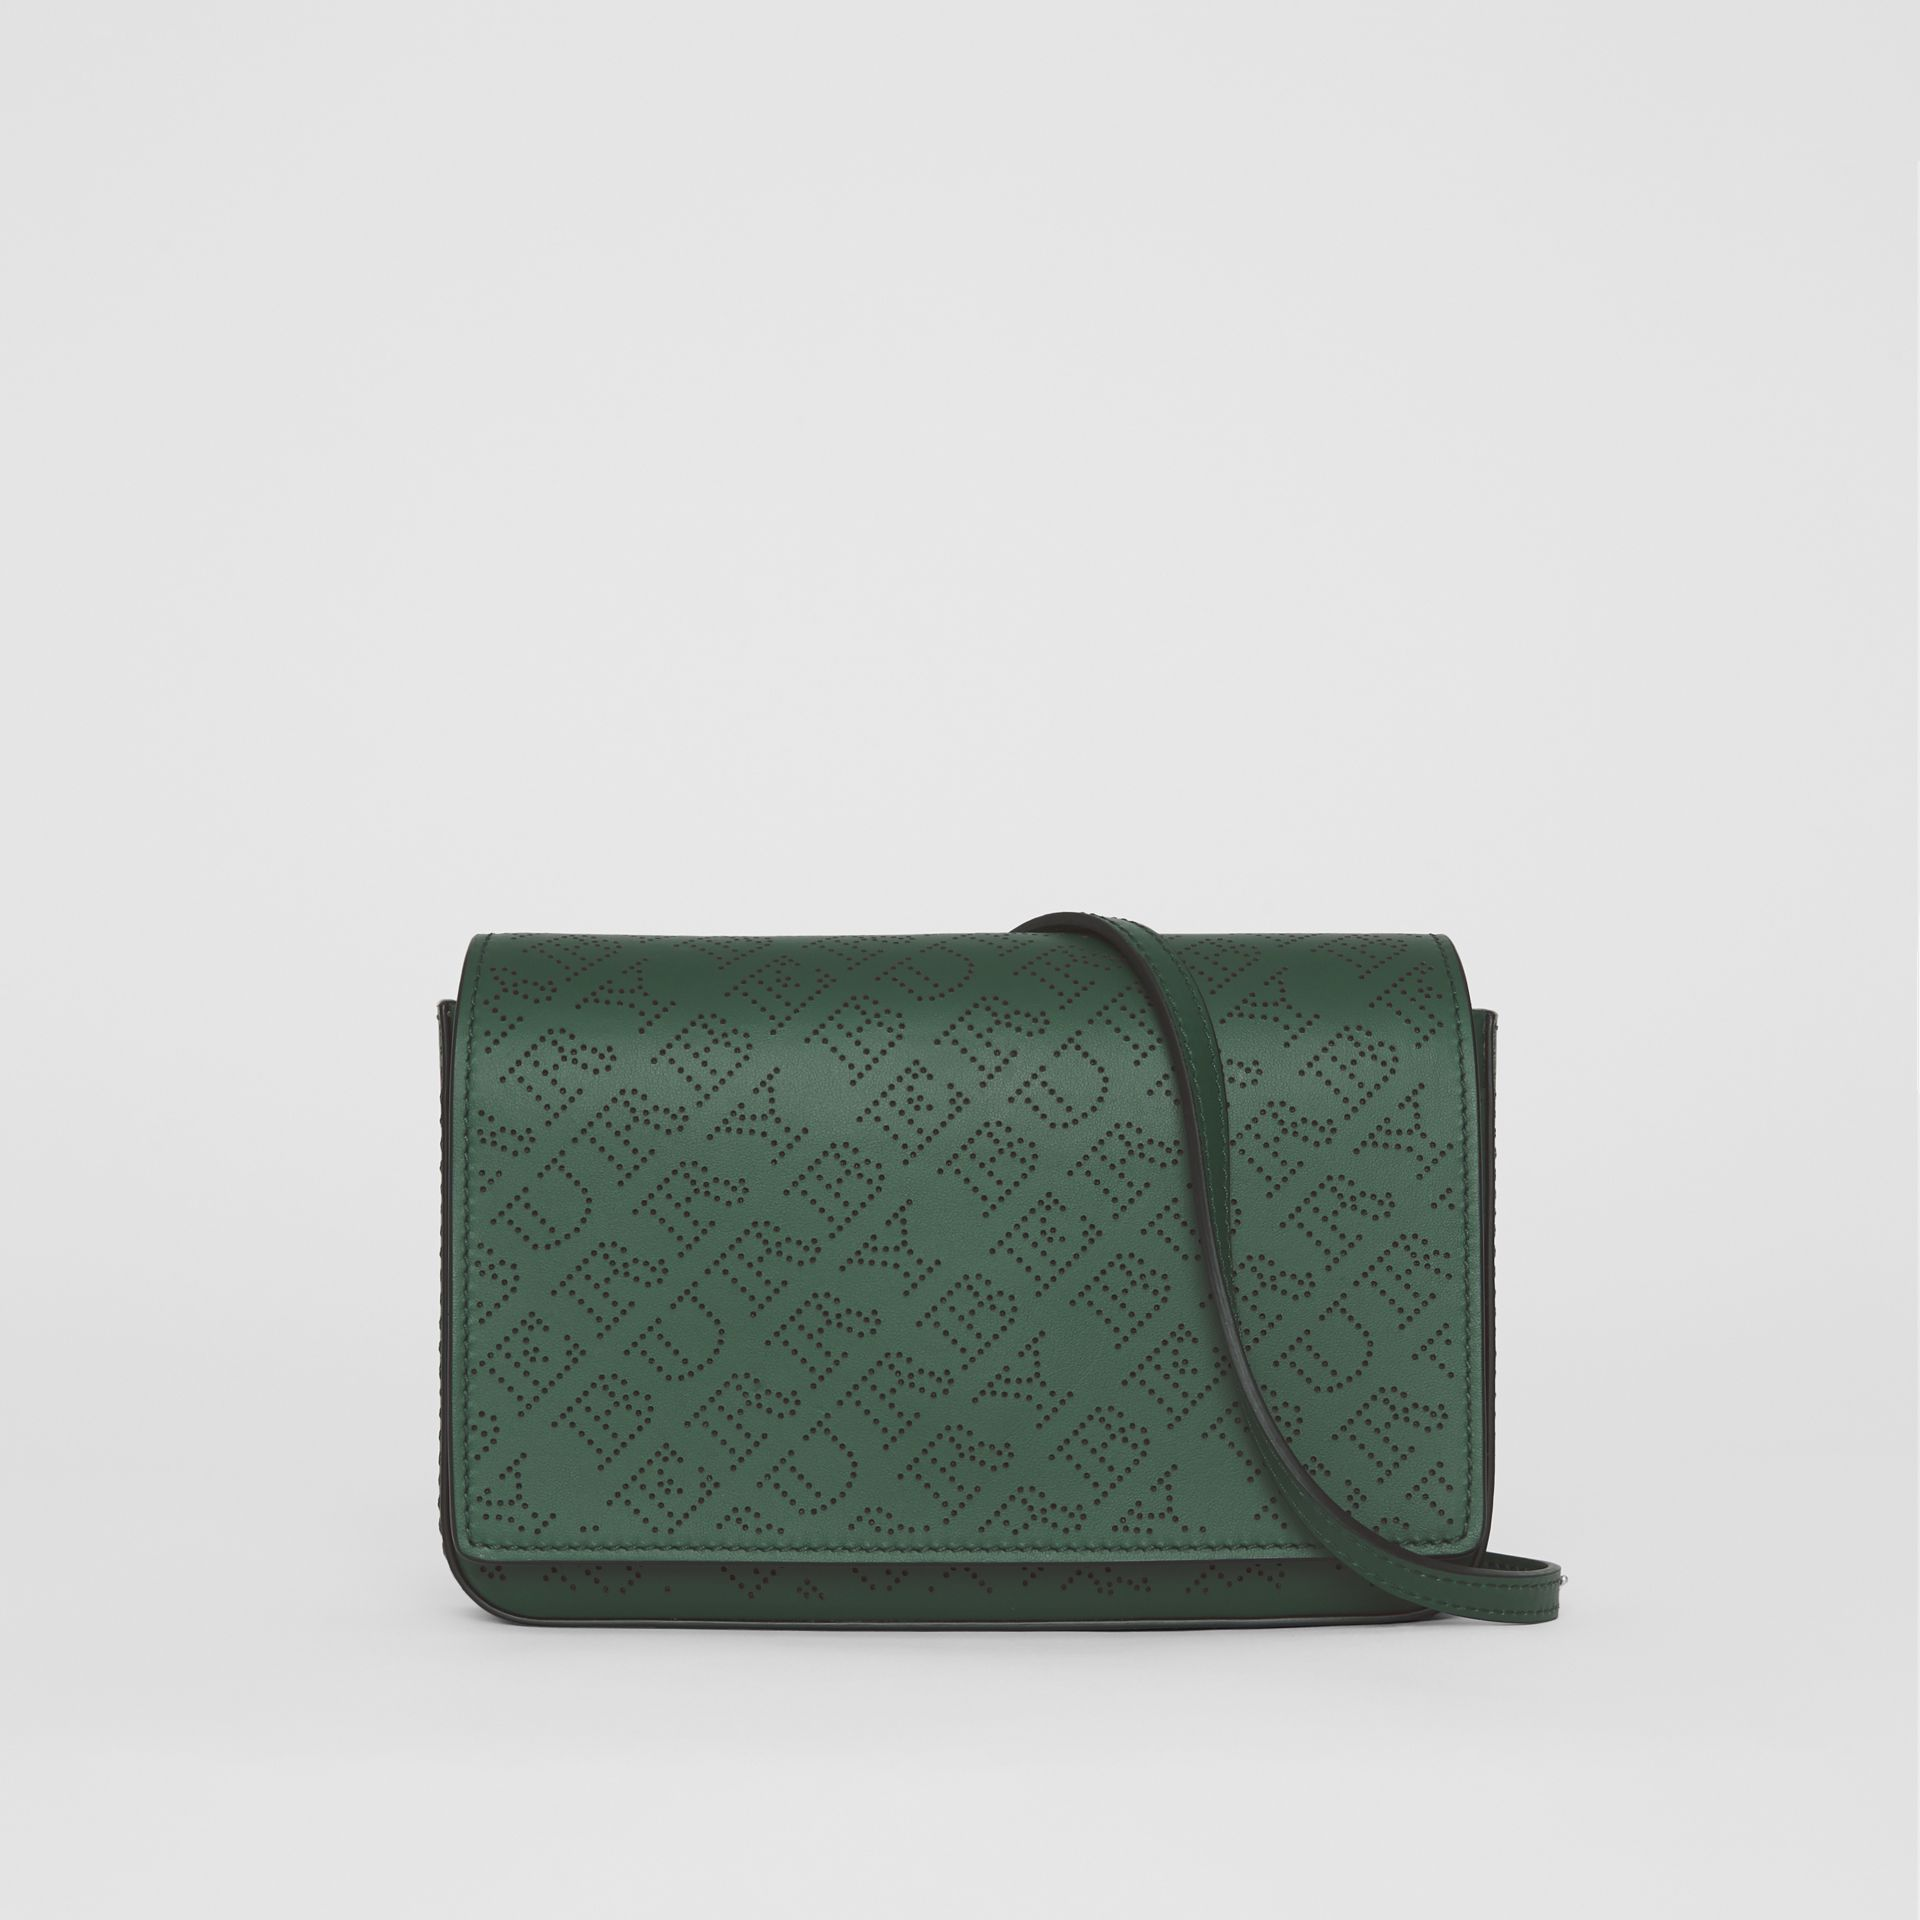 Perforated Logo Leather Wallet with Detachable Strap in Vintage Green - Women | Burberry Singapore - gallery image 2